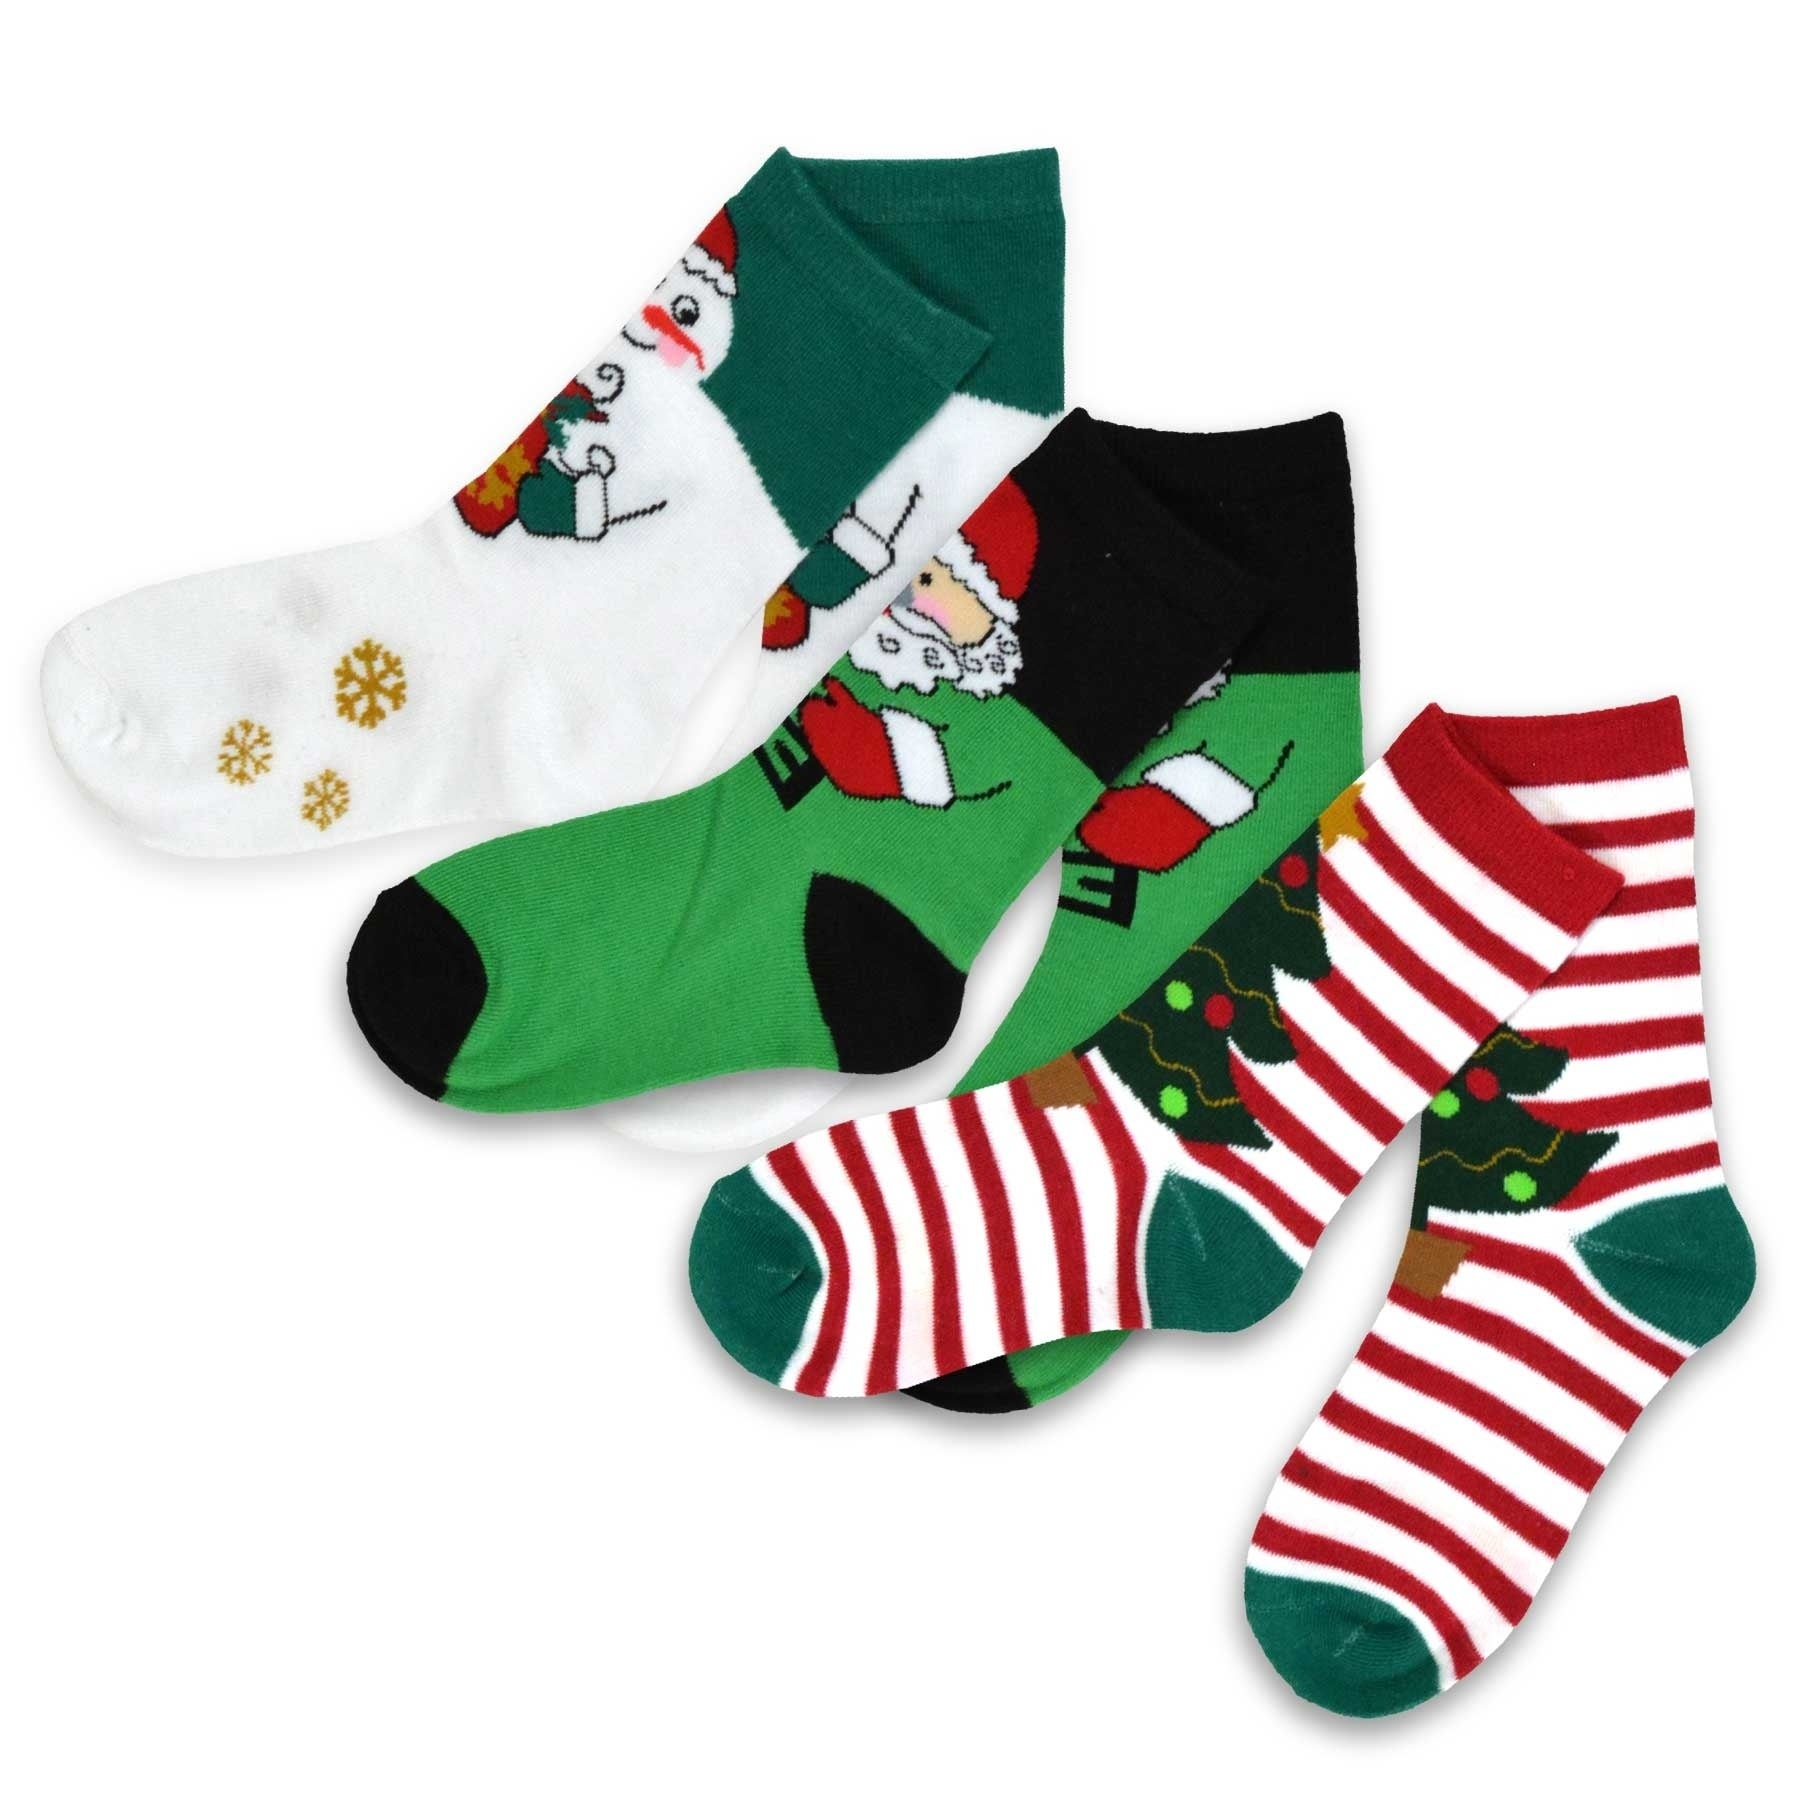 03324462a85 TeeHee Christmas Kids Cotton Fun Crew Socks 3-Pair Pack (Santa Clause  Snowman)